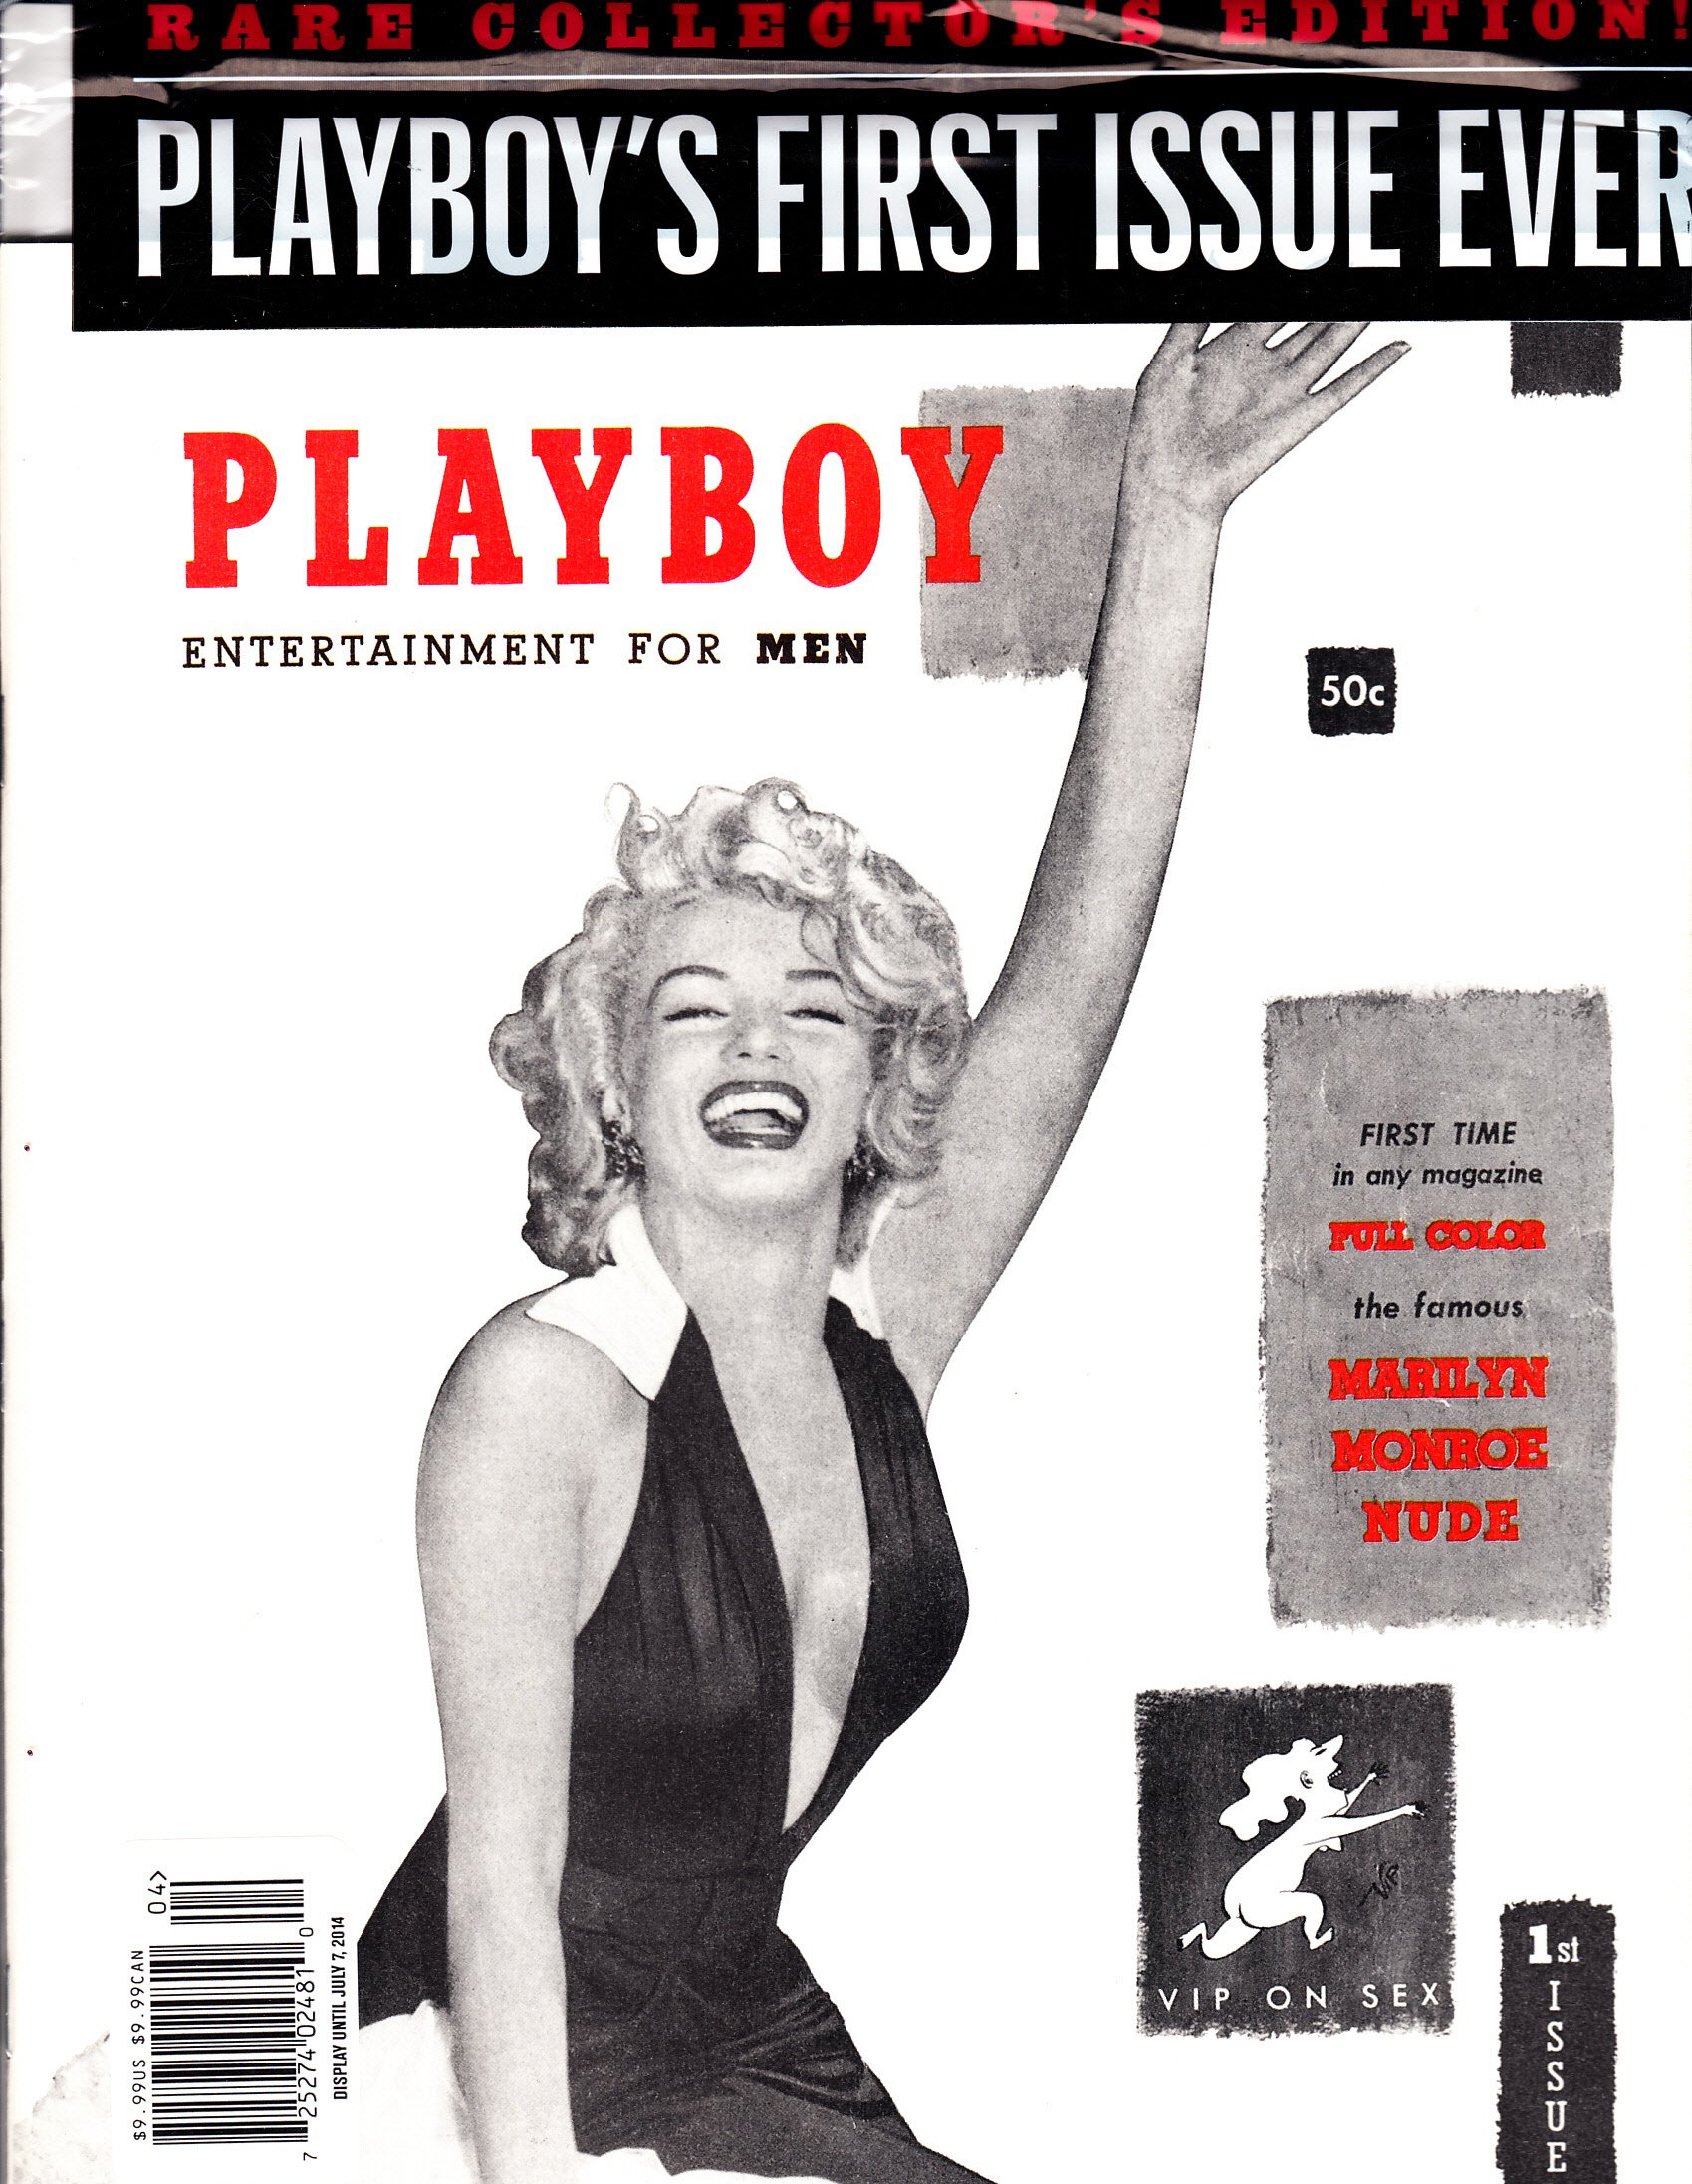 Amazon.com: Playboy Magazine, December 1953: Hugh M. Hefner: Books